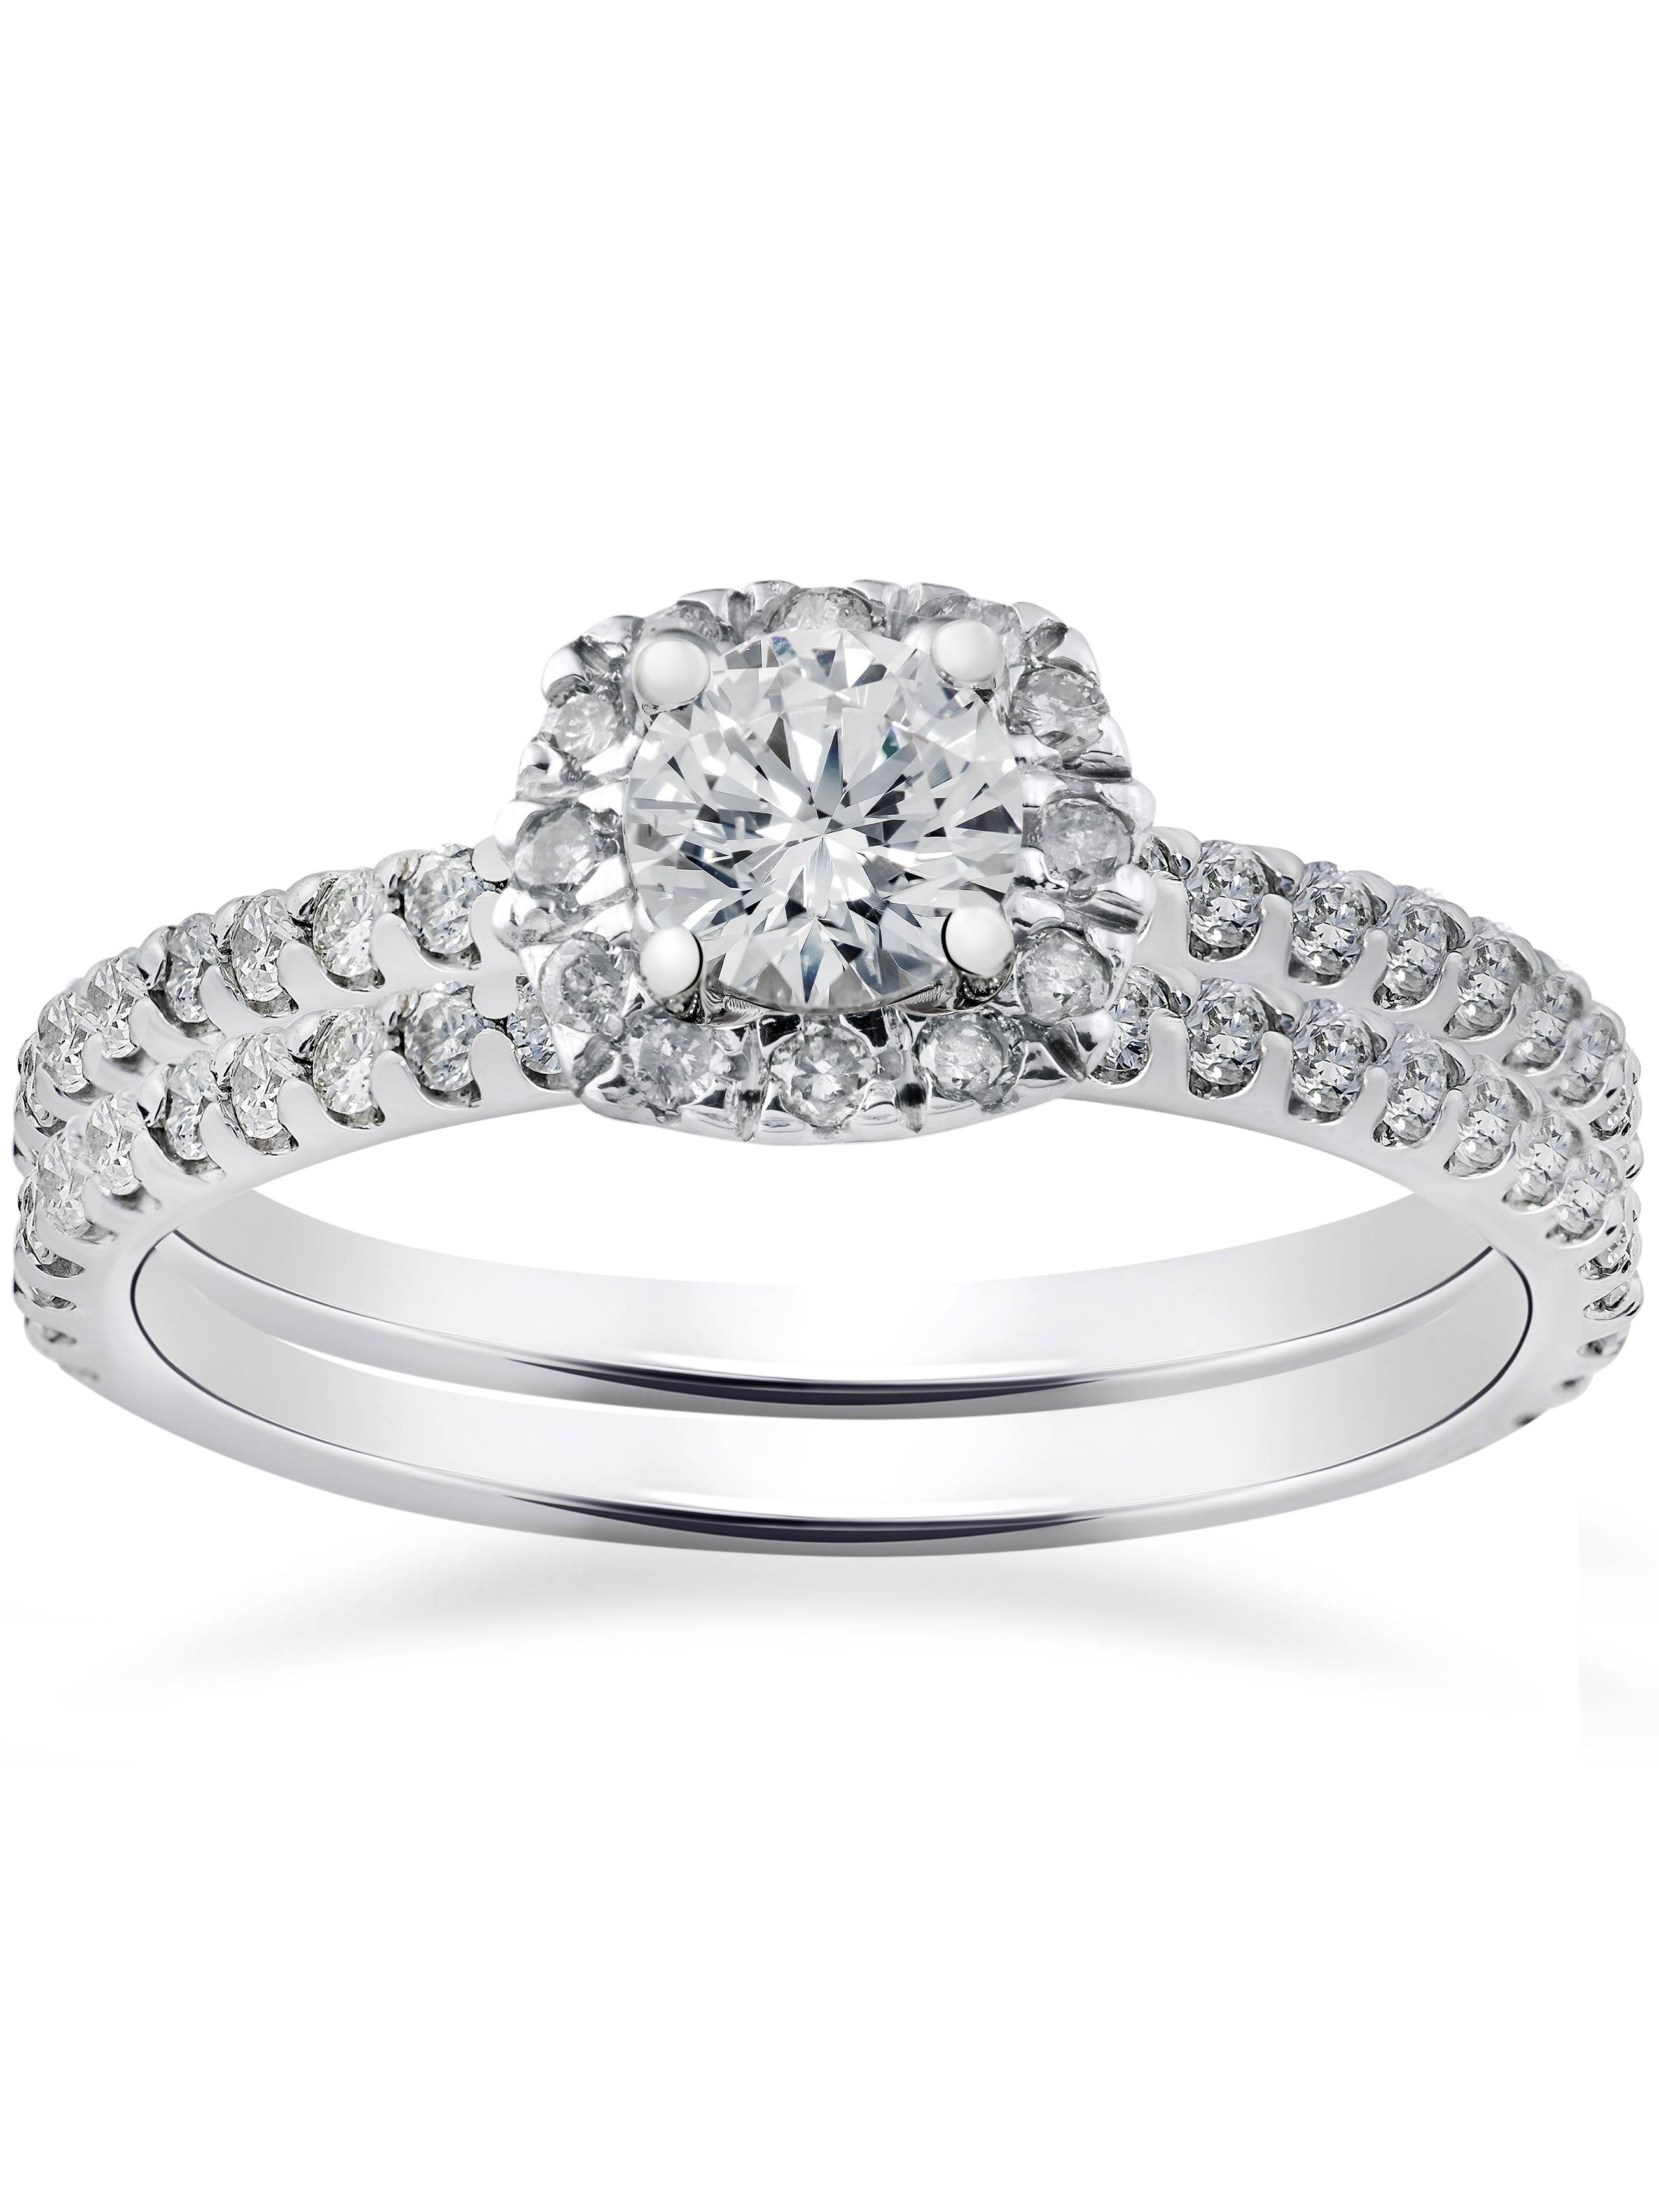 1ct Cushion Halo Diamond Engagement Wedding Ring Set 14K White Gold